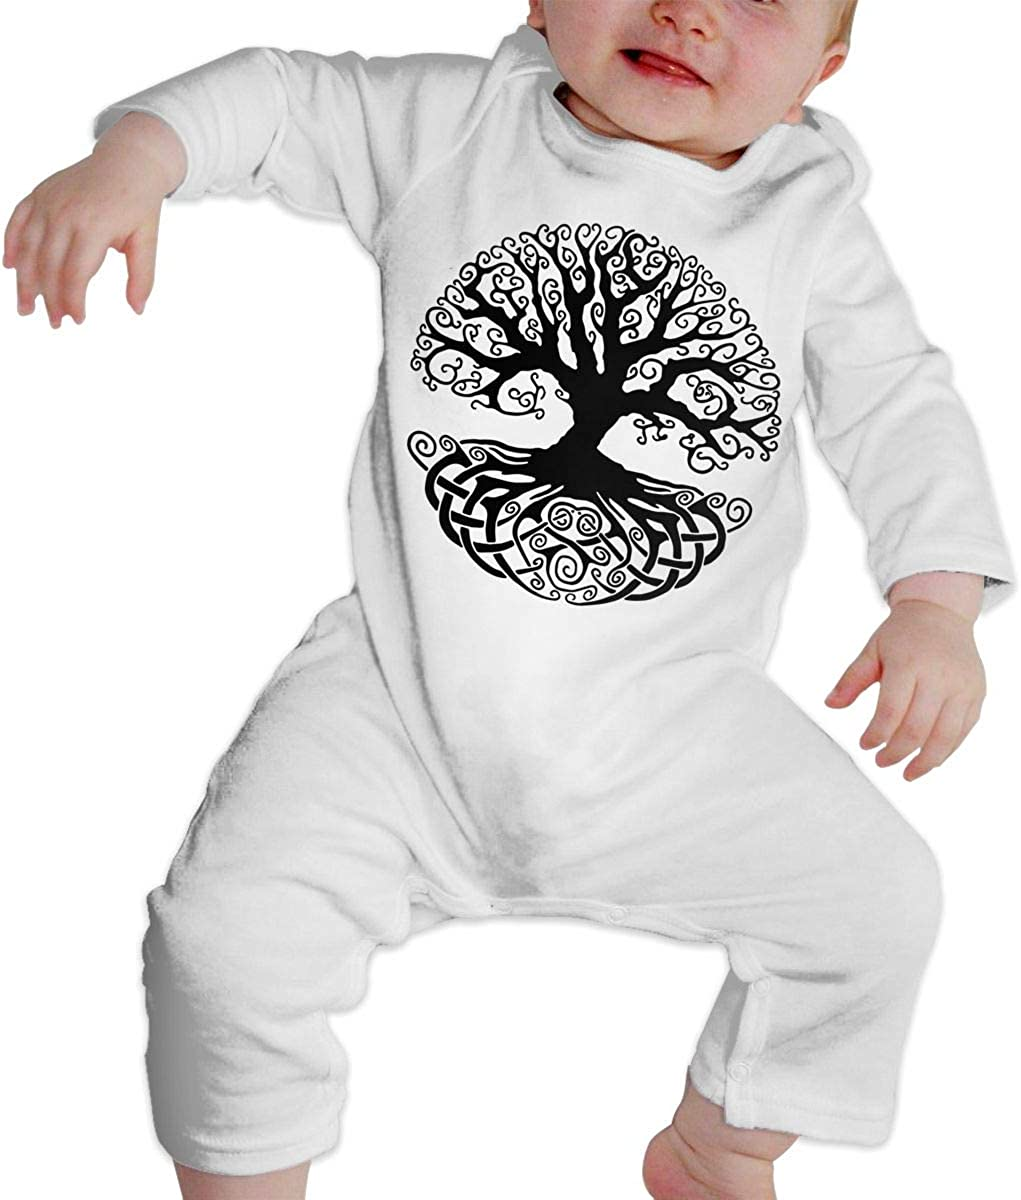 YELTY6F Celtic Tree Knots Printed Boys Girls One-Piece Suit Long Sleeve Rompers White